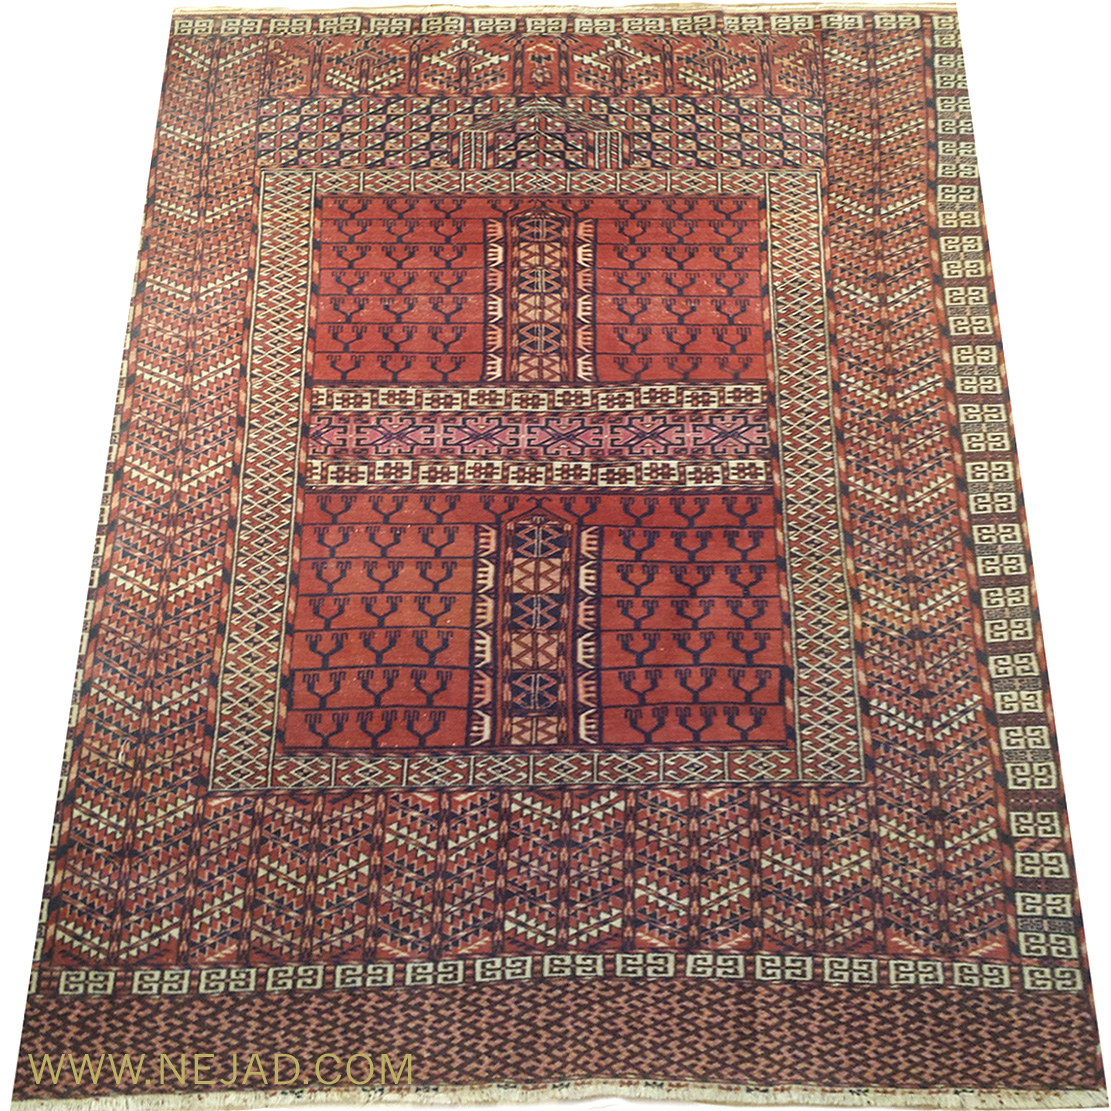 Antique Turkeman Rug - Nejad Rugs #161941